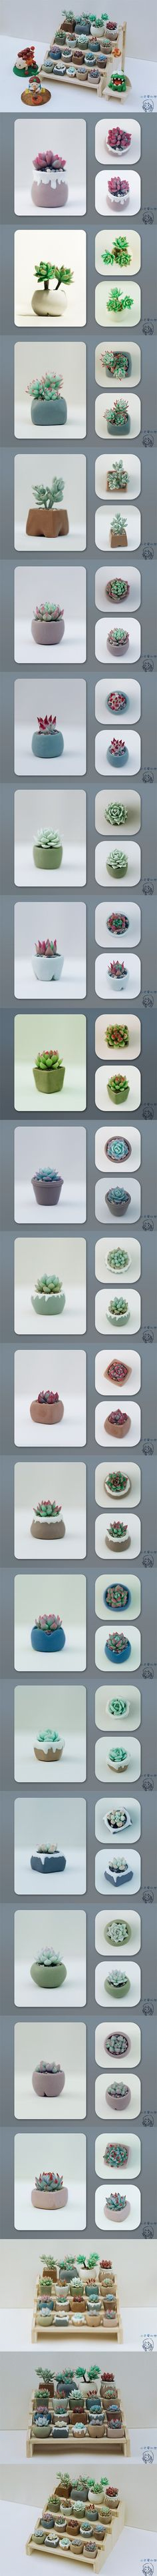 Make to actual size to display little cacti? Pretty plants.